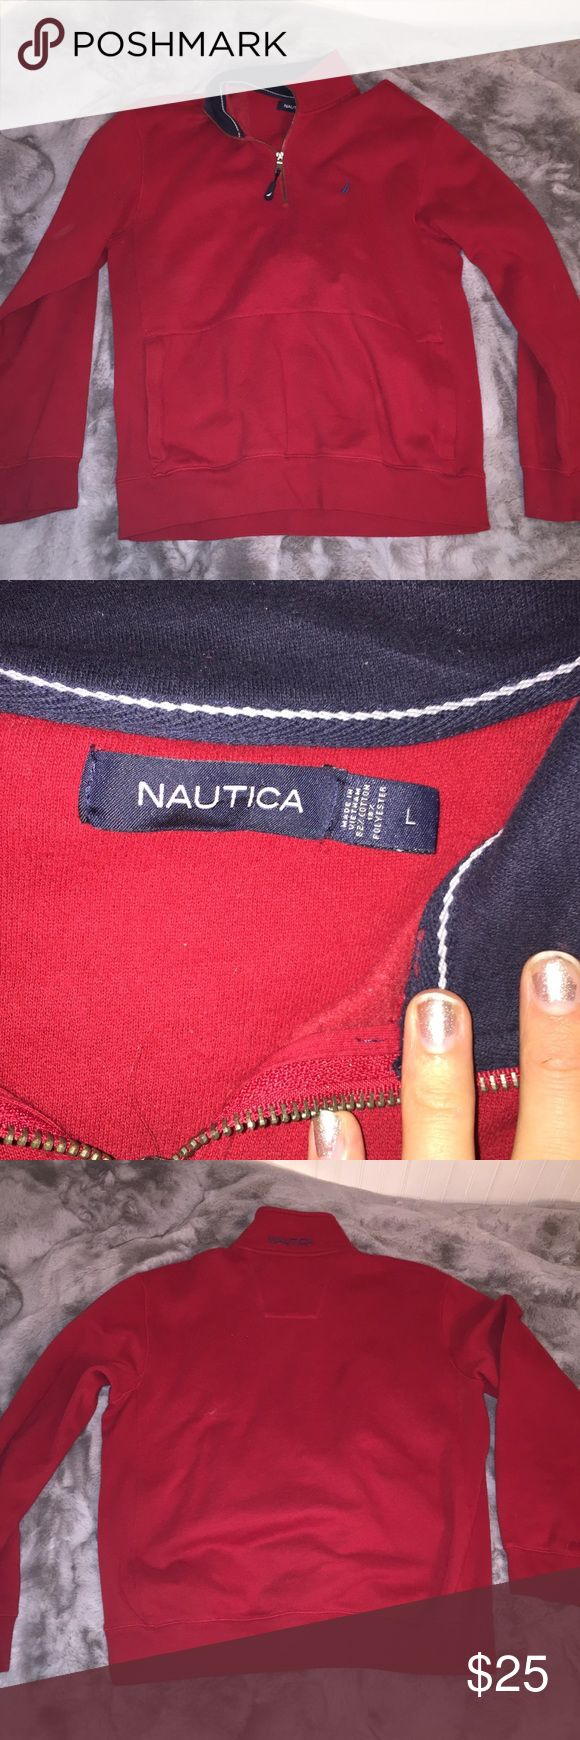 Nautical red quarter zip size large worn once Nautical red quarter zip size large worn once. Perfect condition! Fleece inside that is very soft and warm! Pocket in the front like a hoodie Nautica Sweaters Zip Up